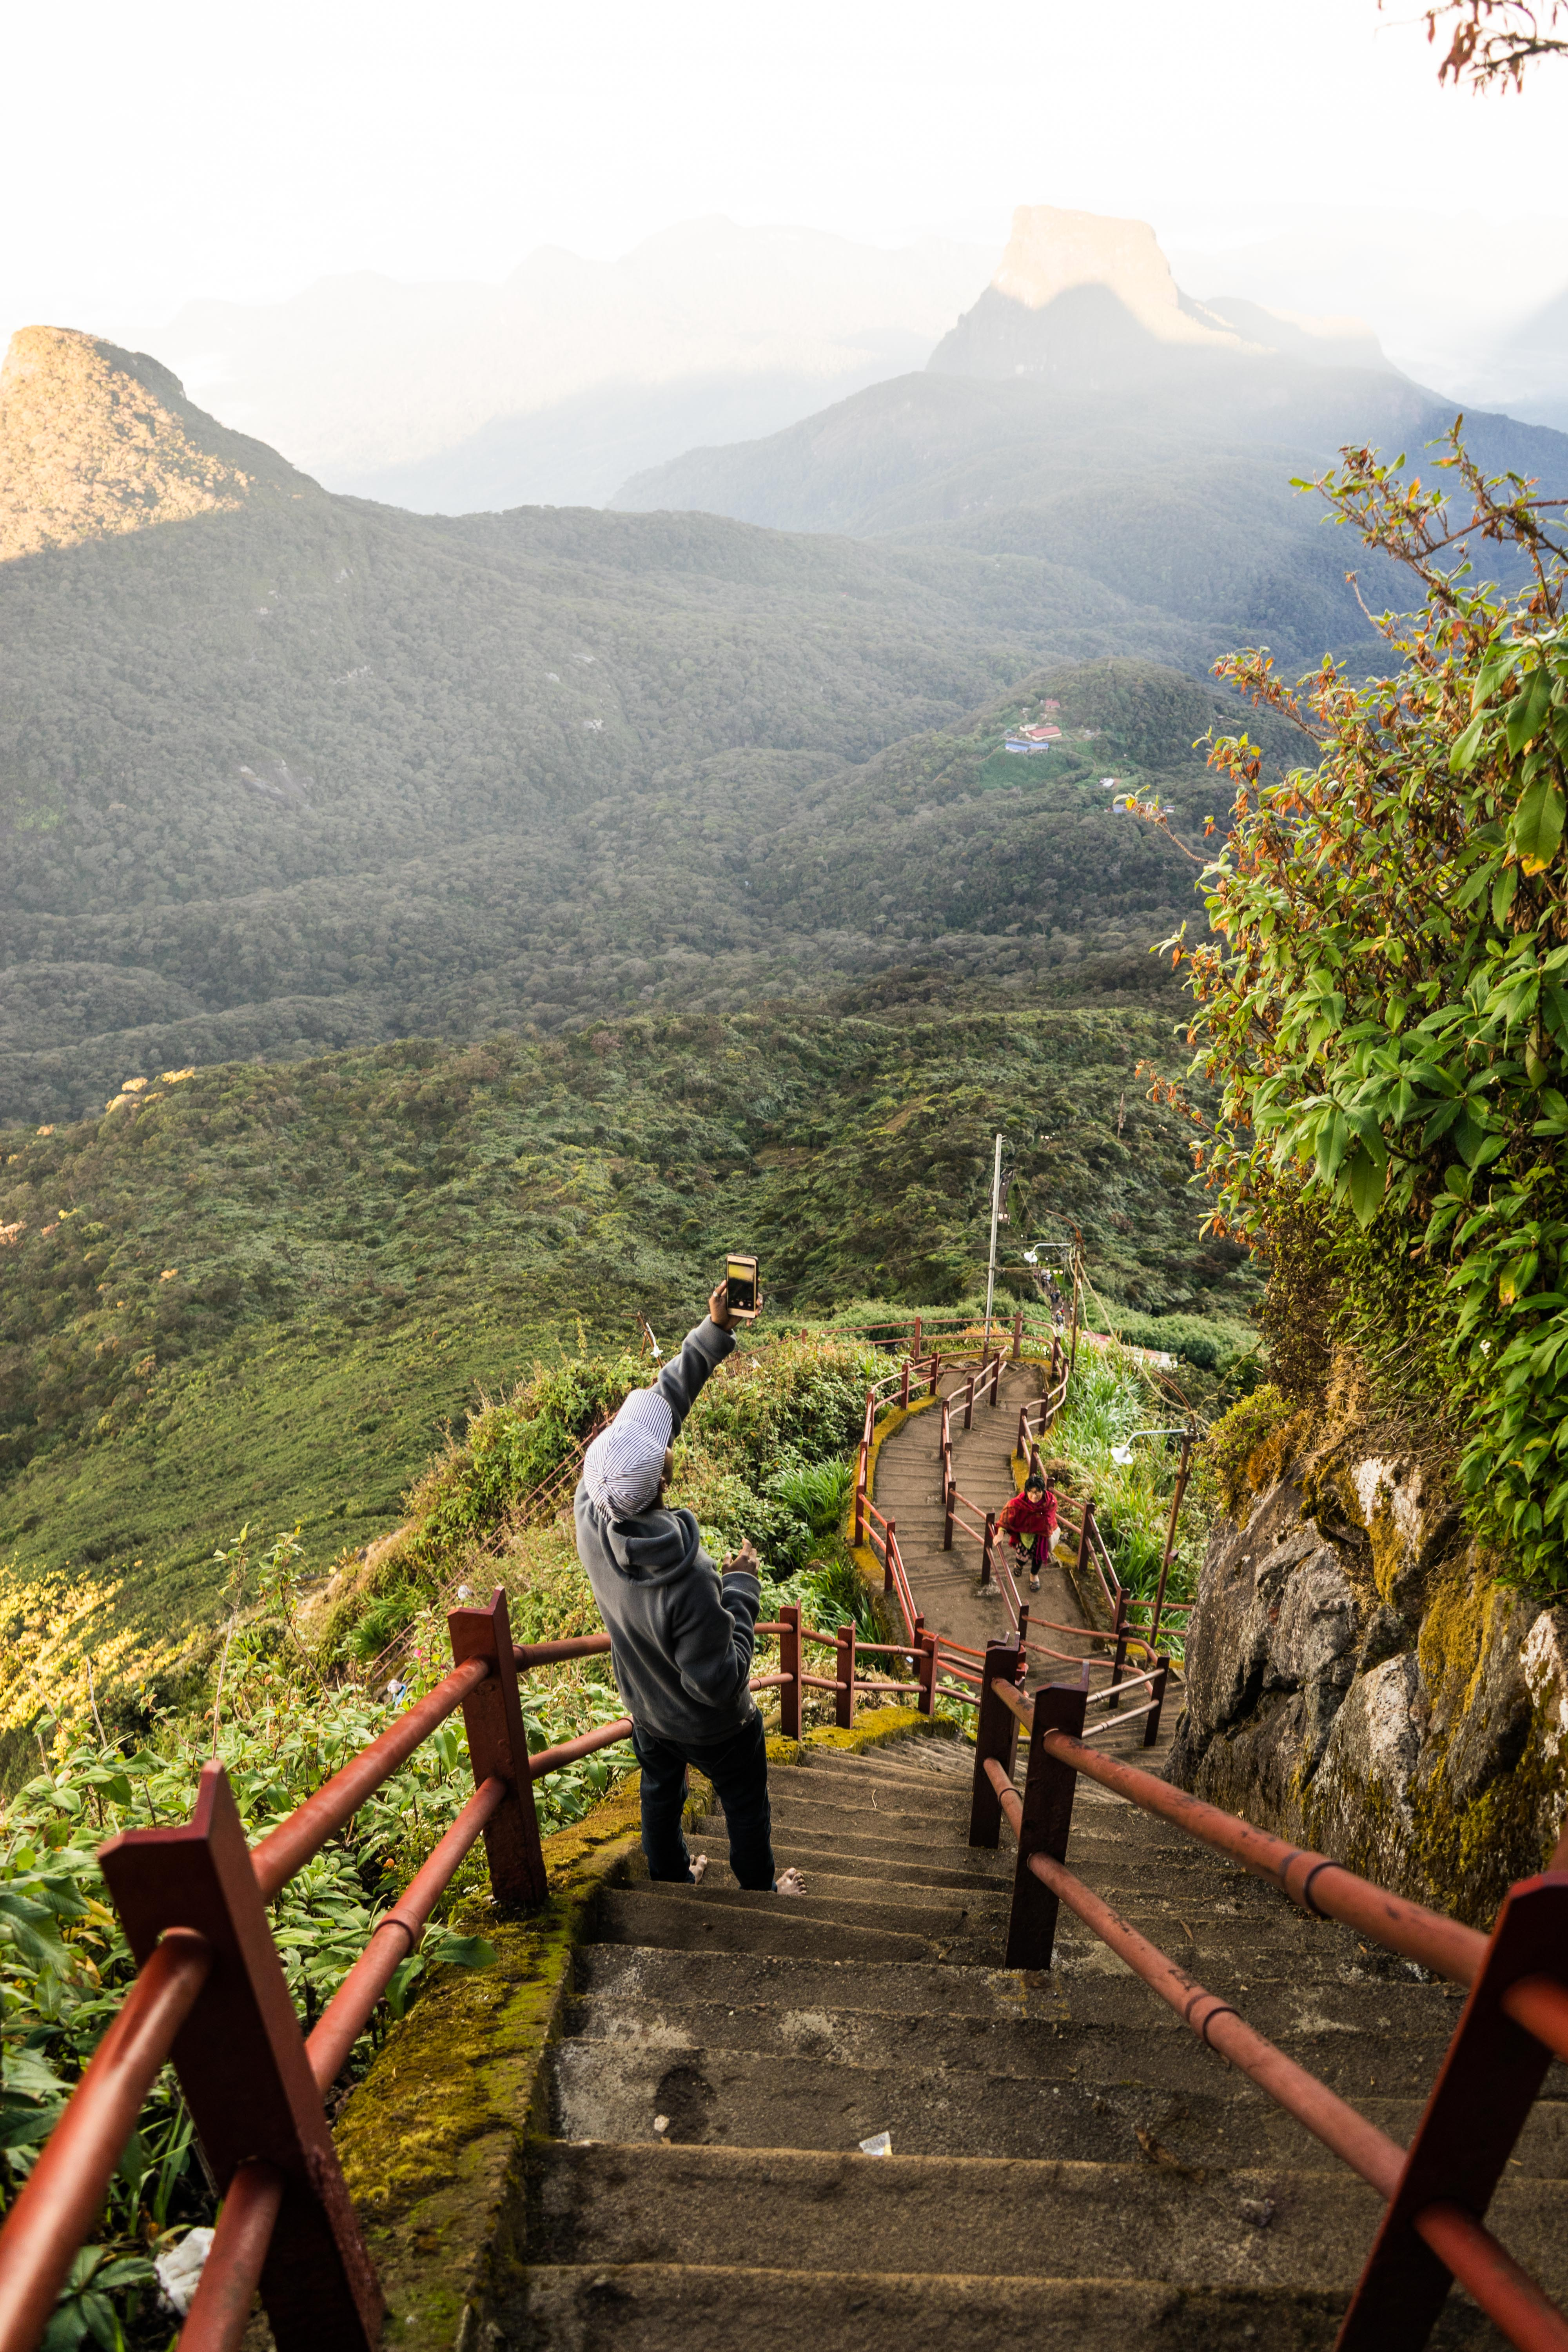 Stairs leading up to Adams peak in front of a jungle landscape.